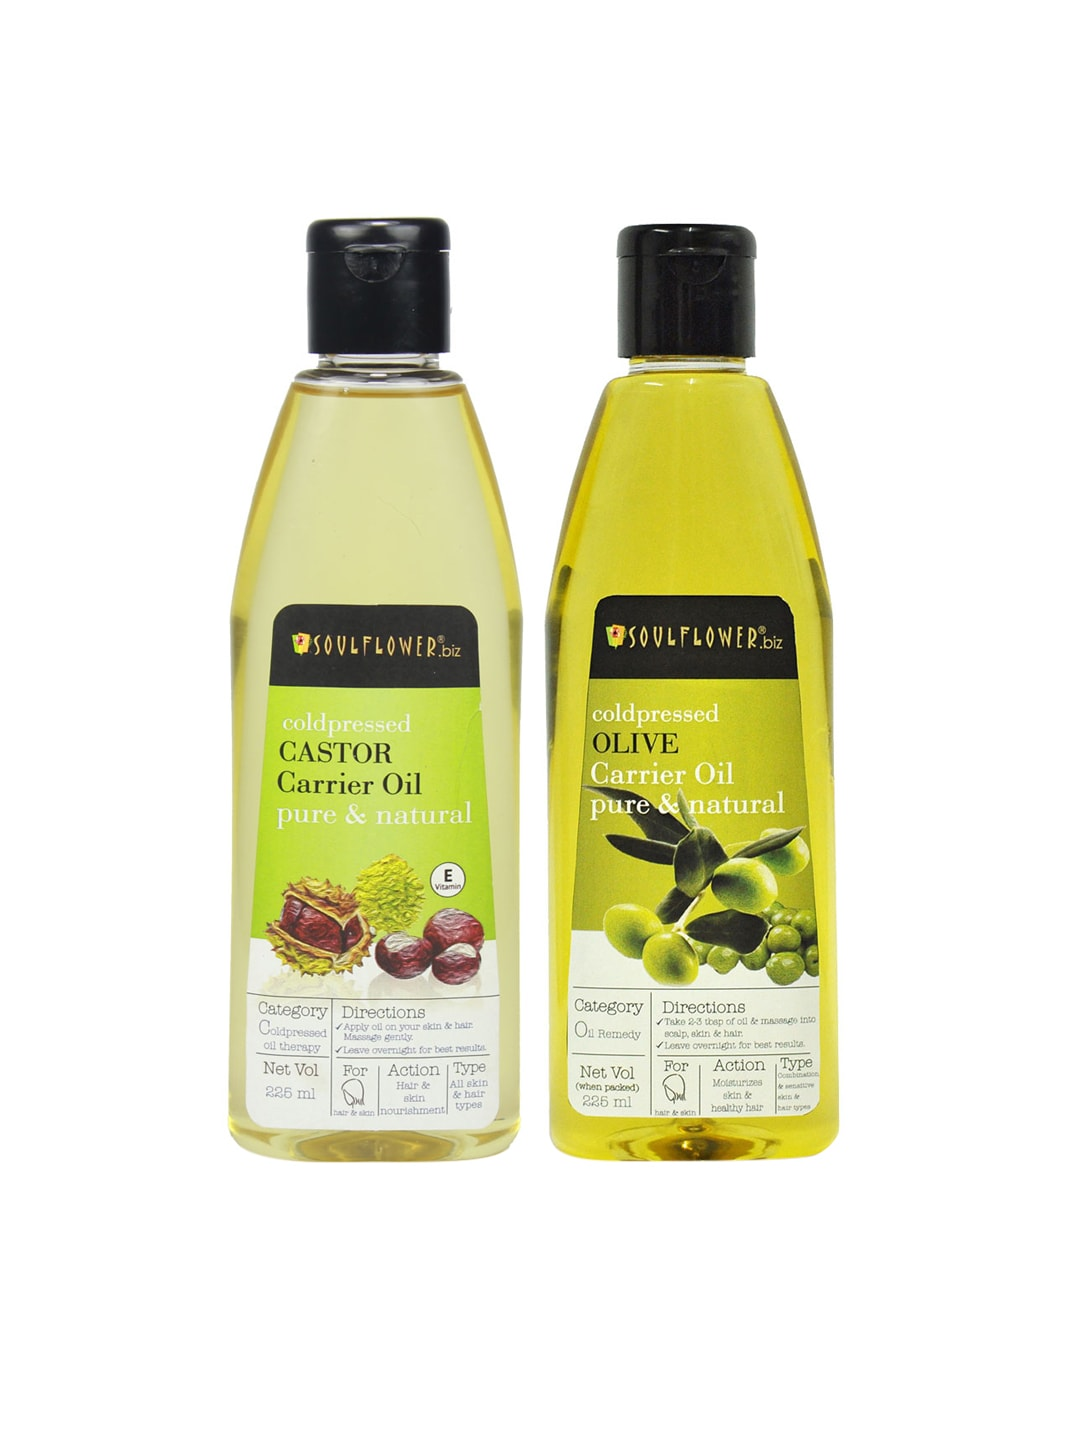 Soulflower Set of 2 Coldpressed Castor & Olive Carrier Oils 225 ml image